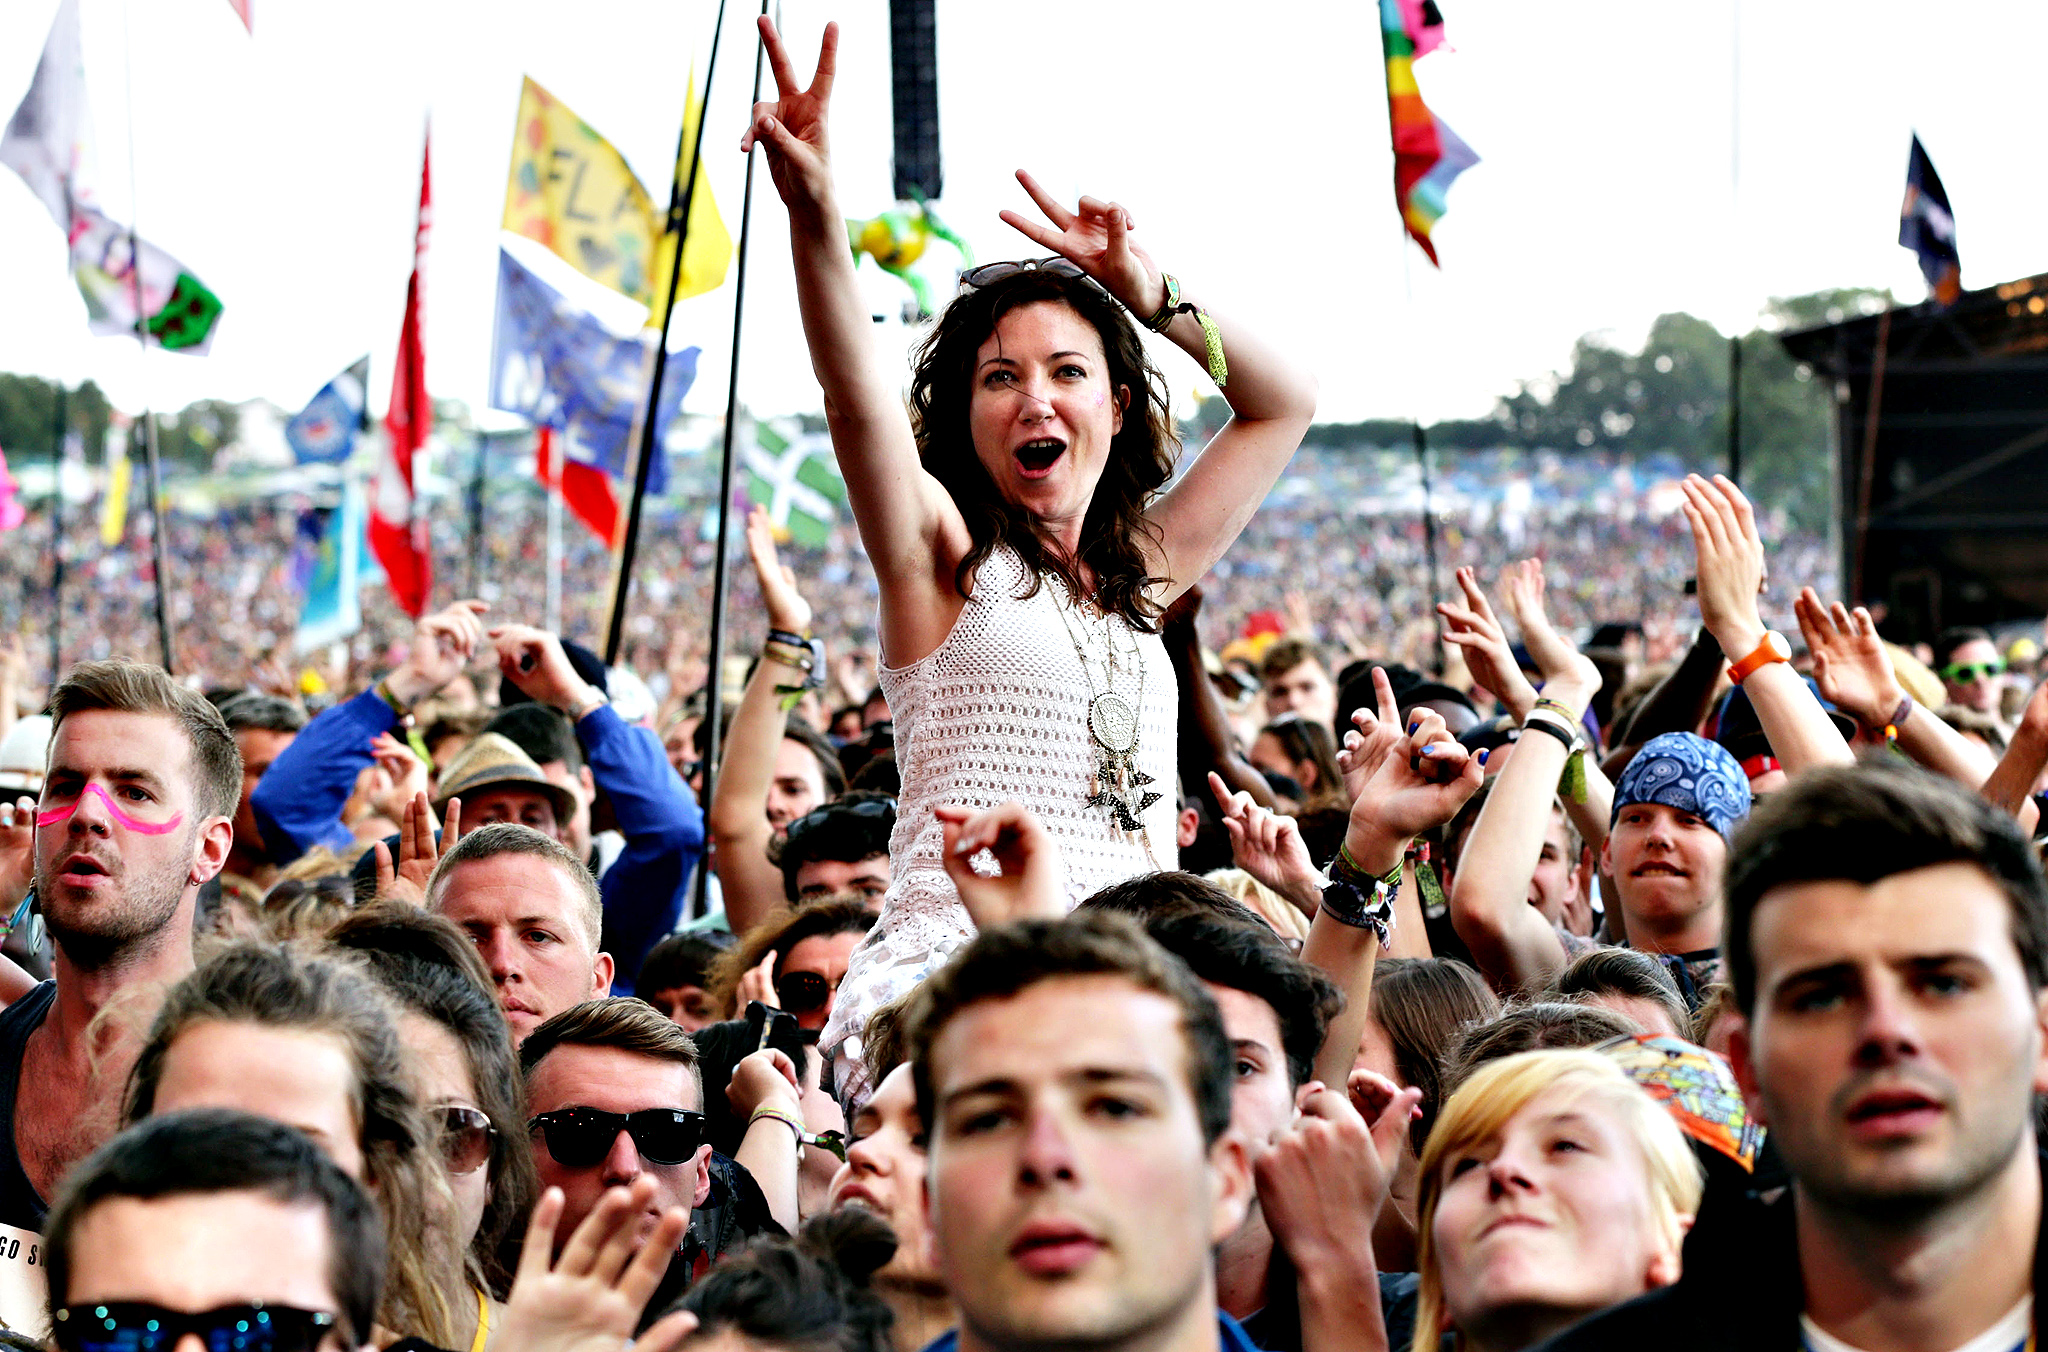 The crowd watching Rudimental on the Pyramid Stage, at the Glastonbury Festival, at Worthy Farm in Somerset. PRESS ASSOCIATION Photo. Picture date: Friday June 27, 2014.